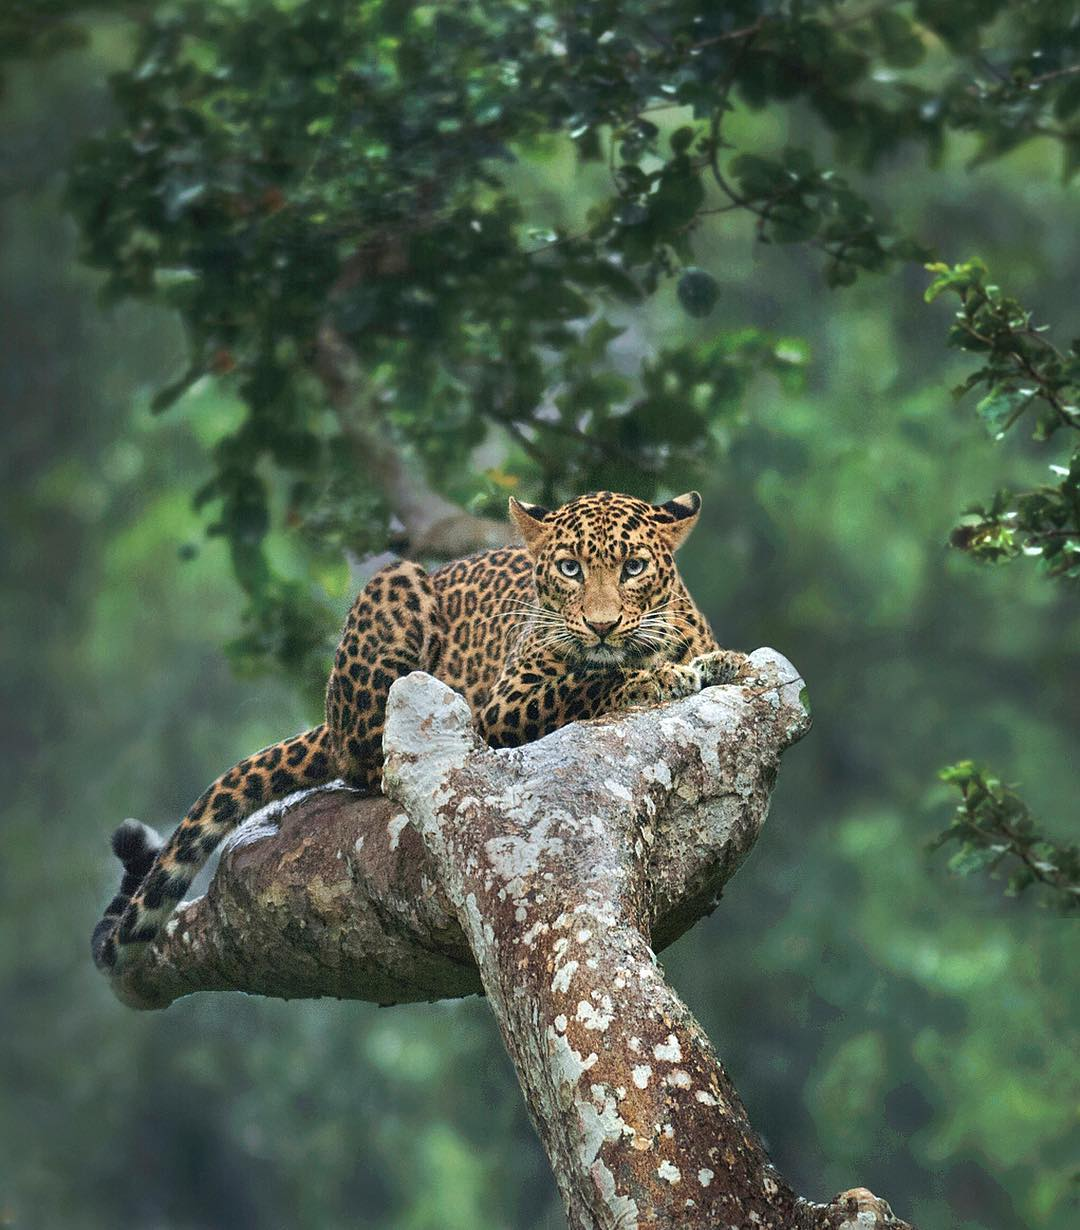 Photo of the day Sep 8 goes to Shaaz Jung, a beautiful picture of leopard sitting in a tree palm